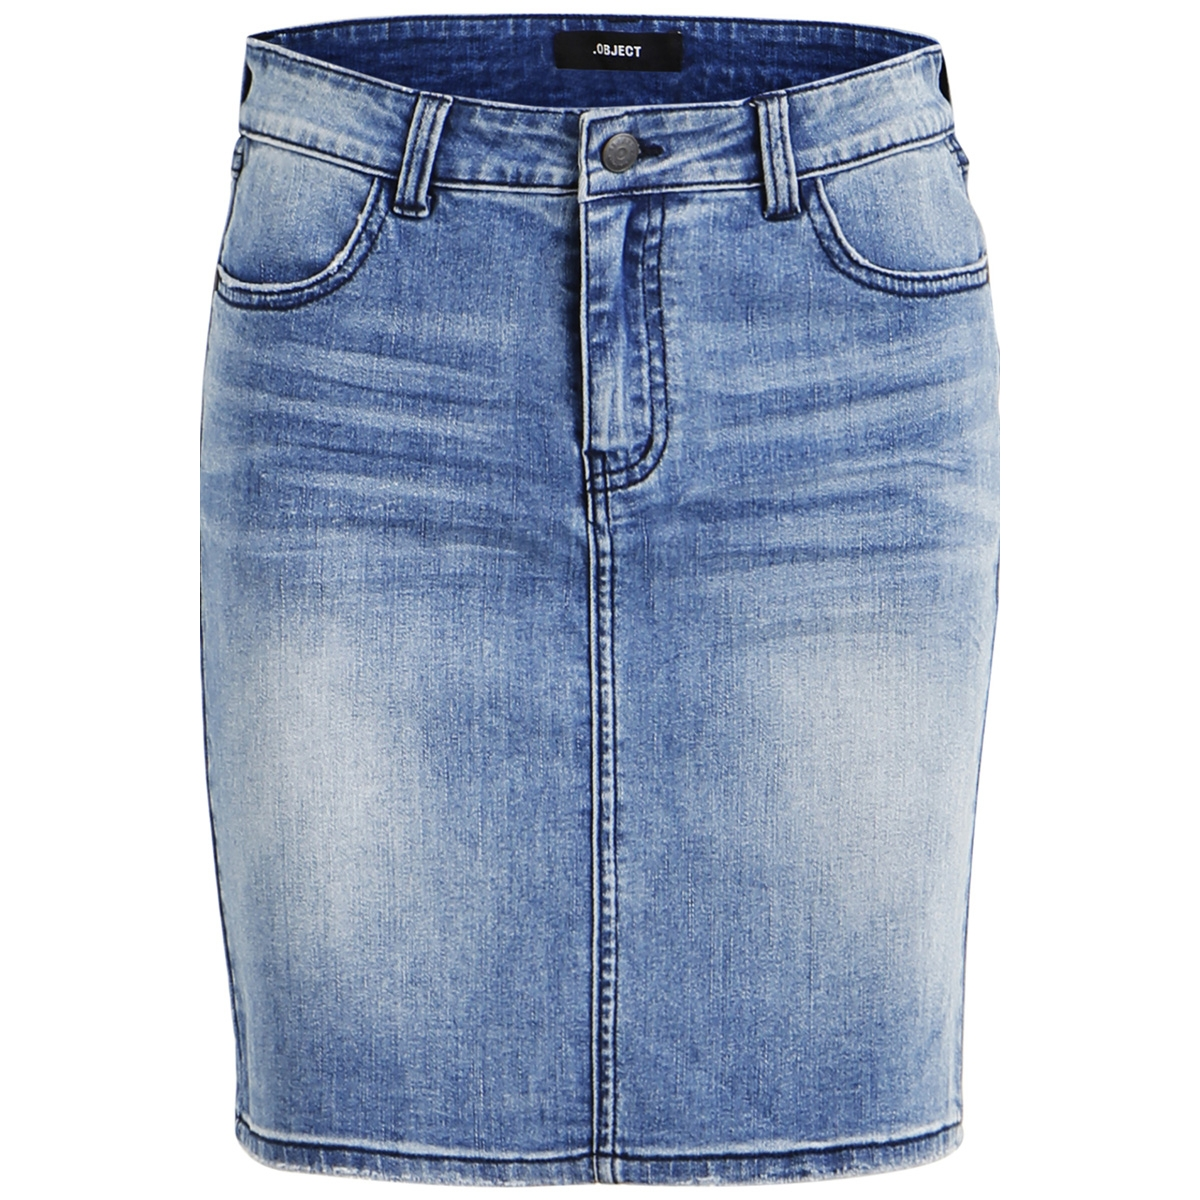 objwin new denim skirt noos 23028503 object rok medium blue denim